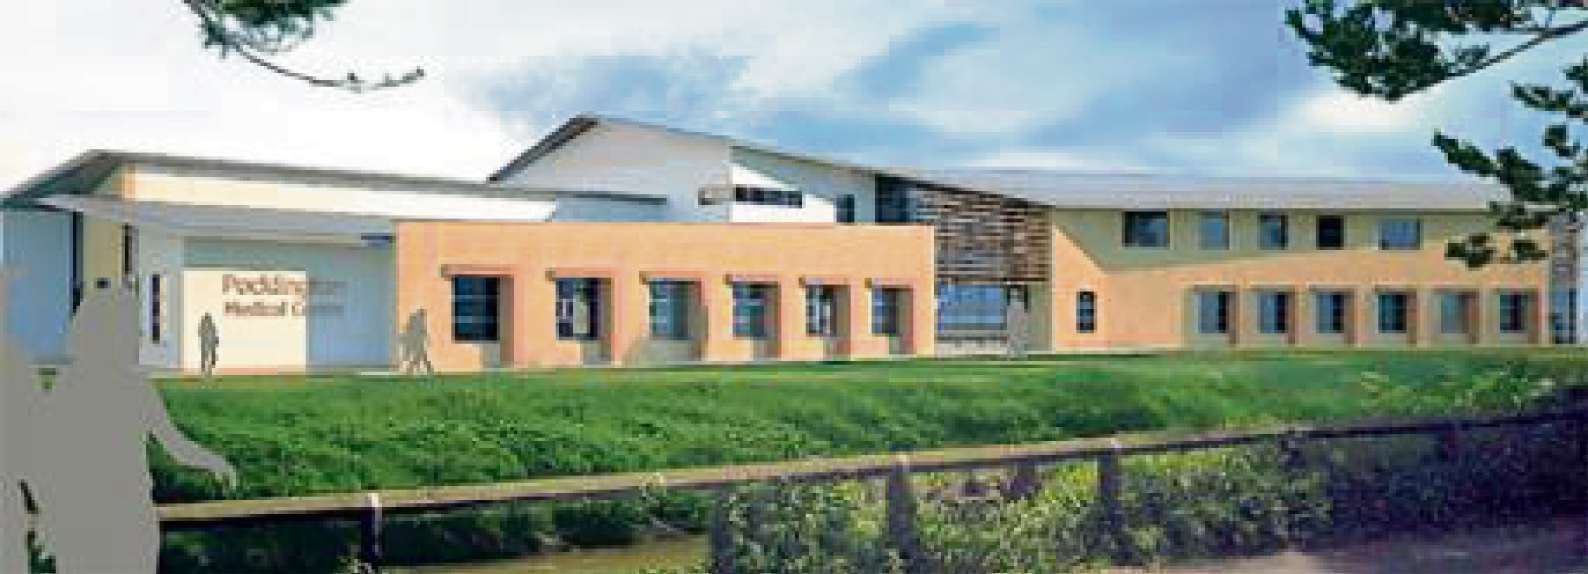 VISION: An artist's impression of the new surgery in Pocklington